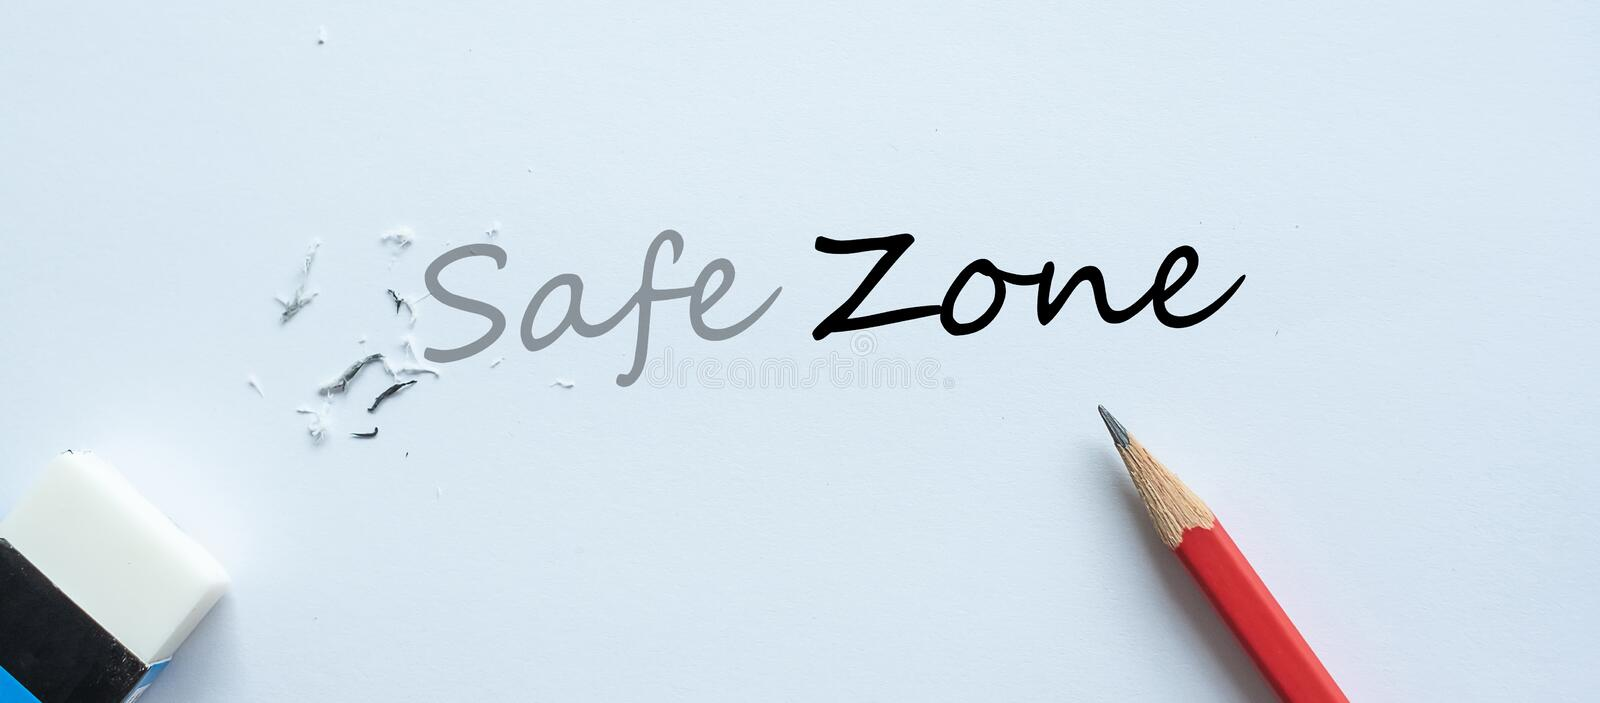 Erasing Safe Zone text change to Zone. challenge, positive thinking and success concept stock photos